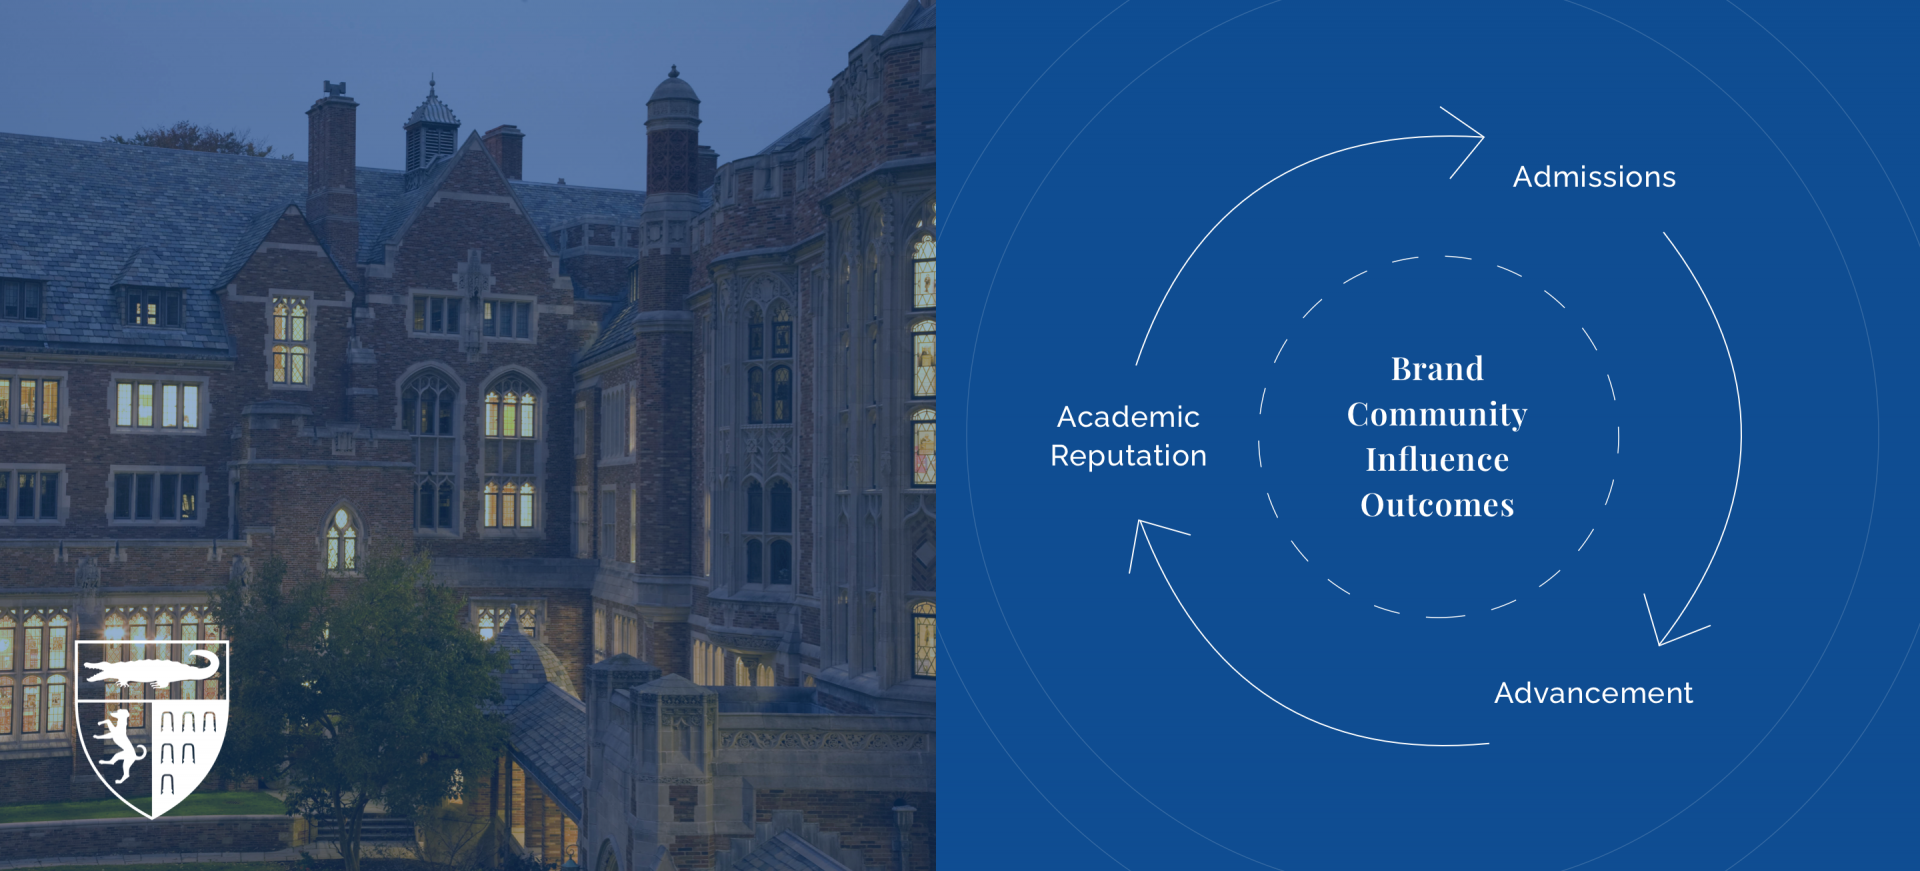 Split screen image of the Yale Law School campus at night and a visualization of how brand, community, influence and outcomes reflect admissions, advancement and academic reputation